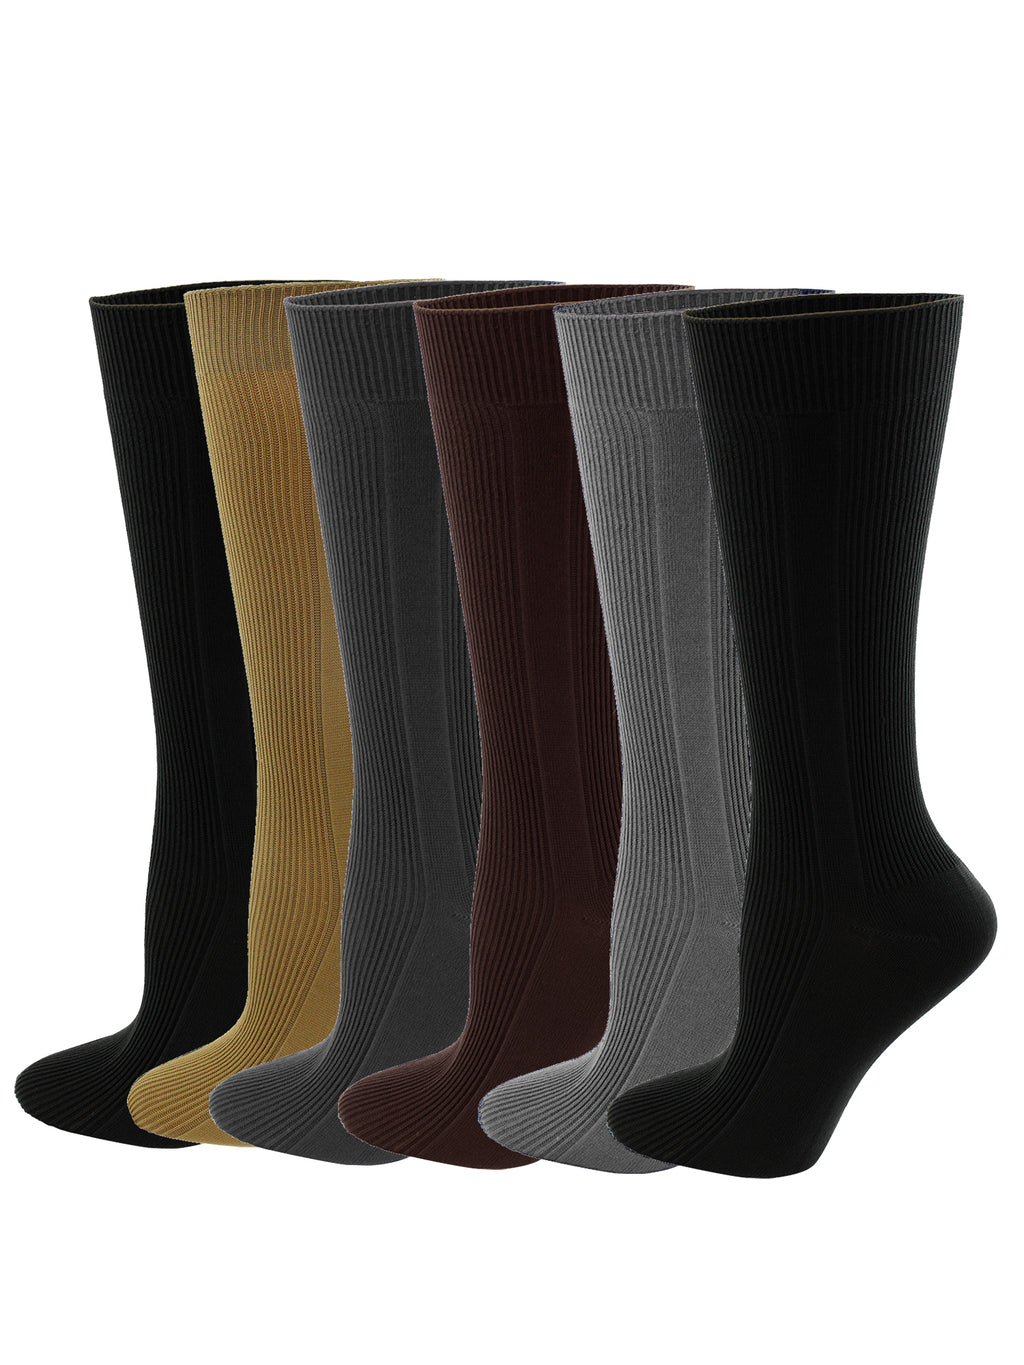 Mens 6 Pack Neutral Thin Dress Socks